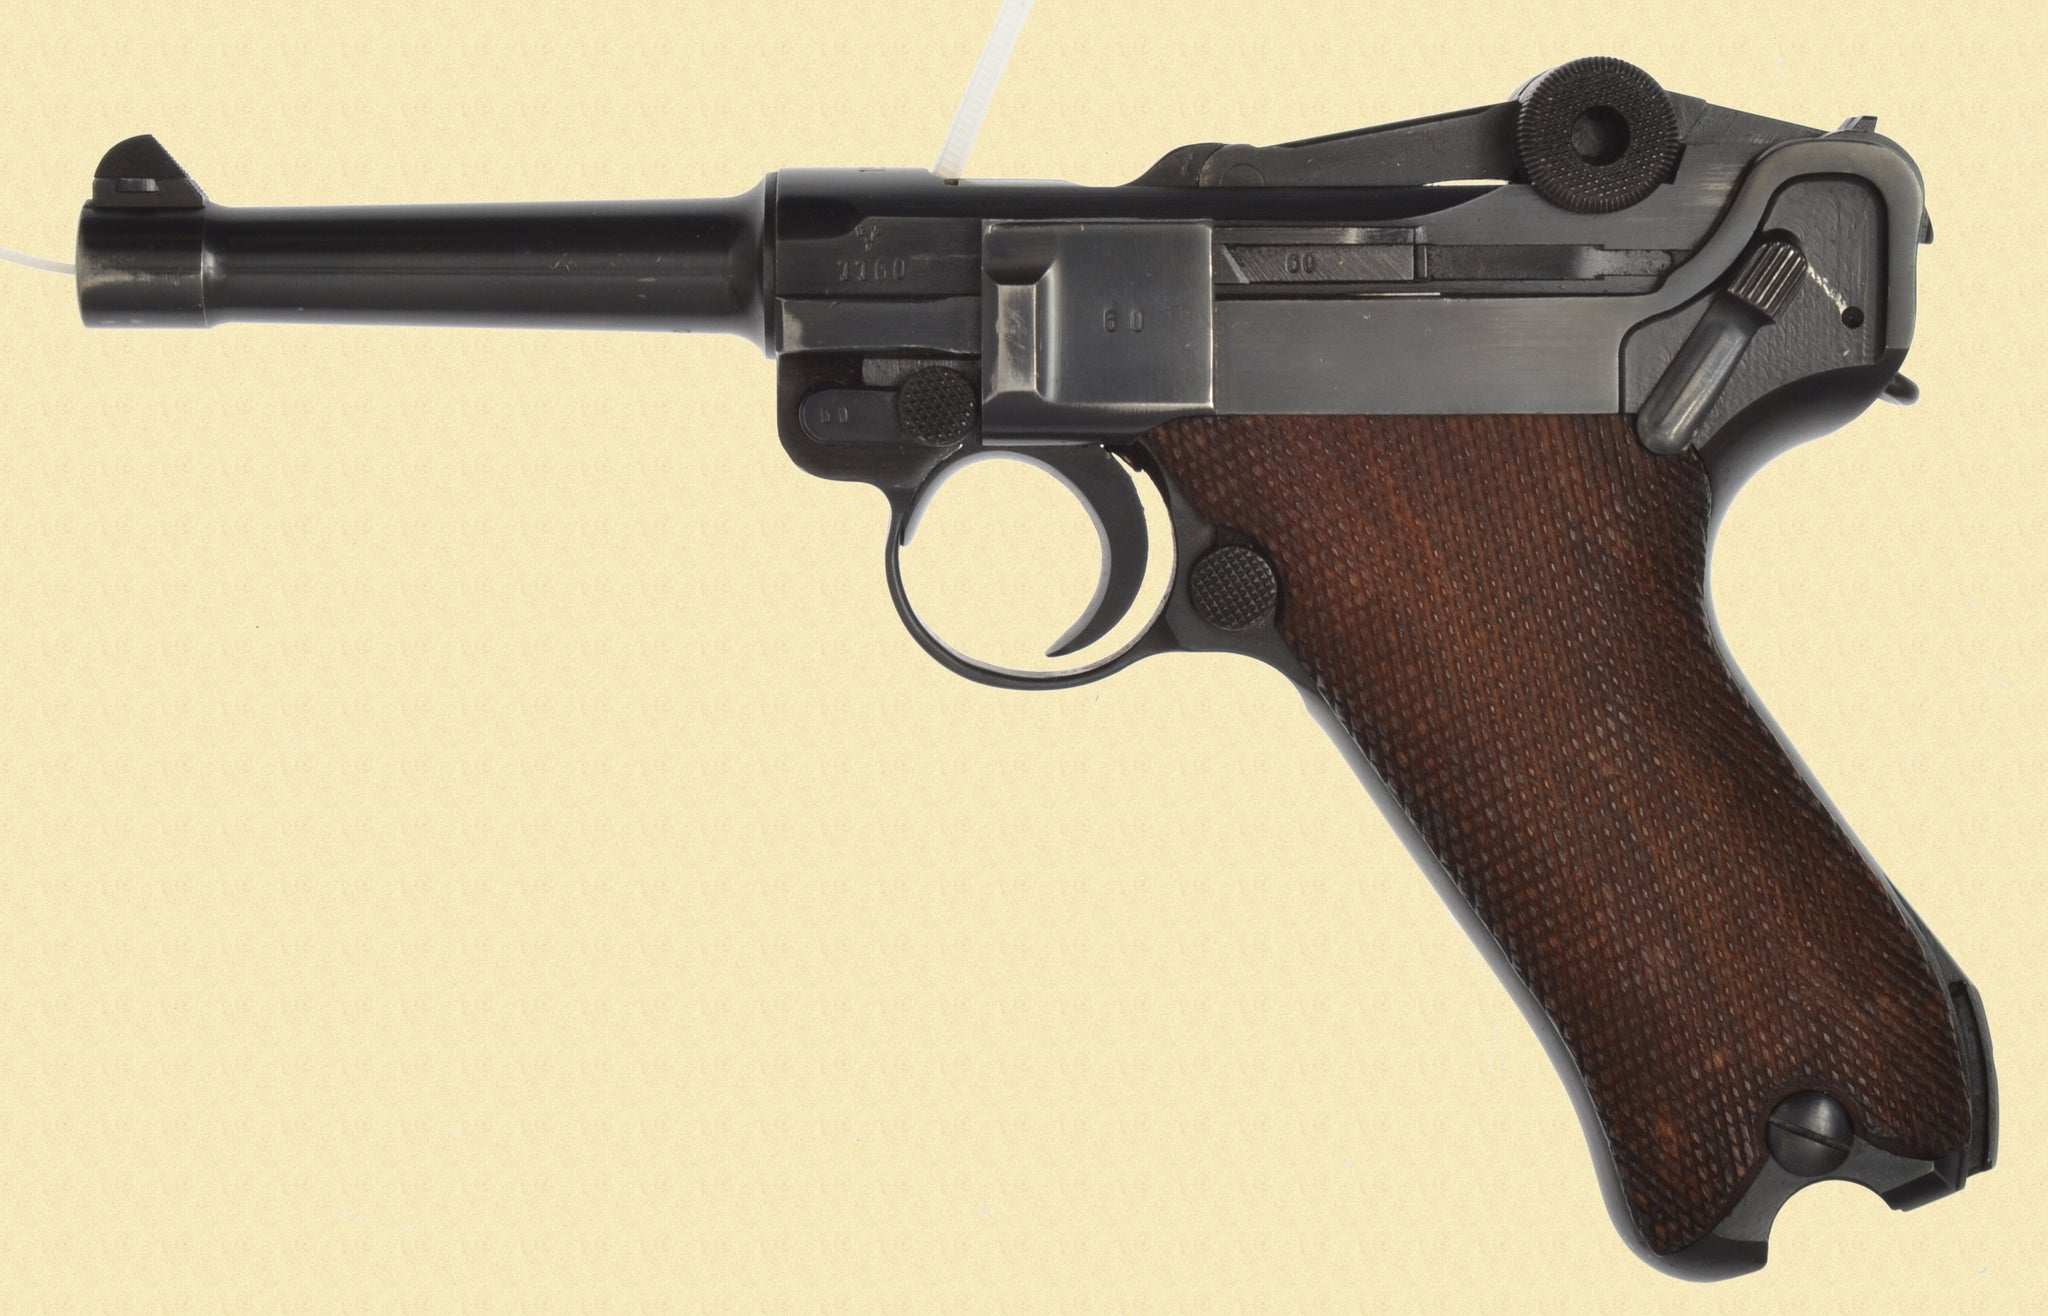 MAUSER BANNER 1940 MILITARY